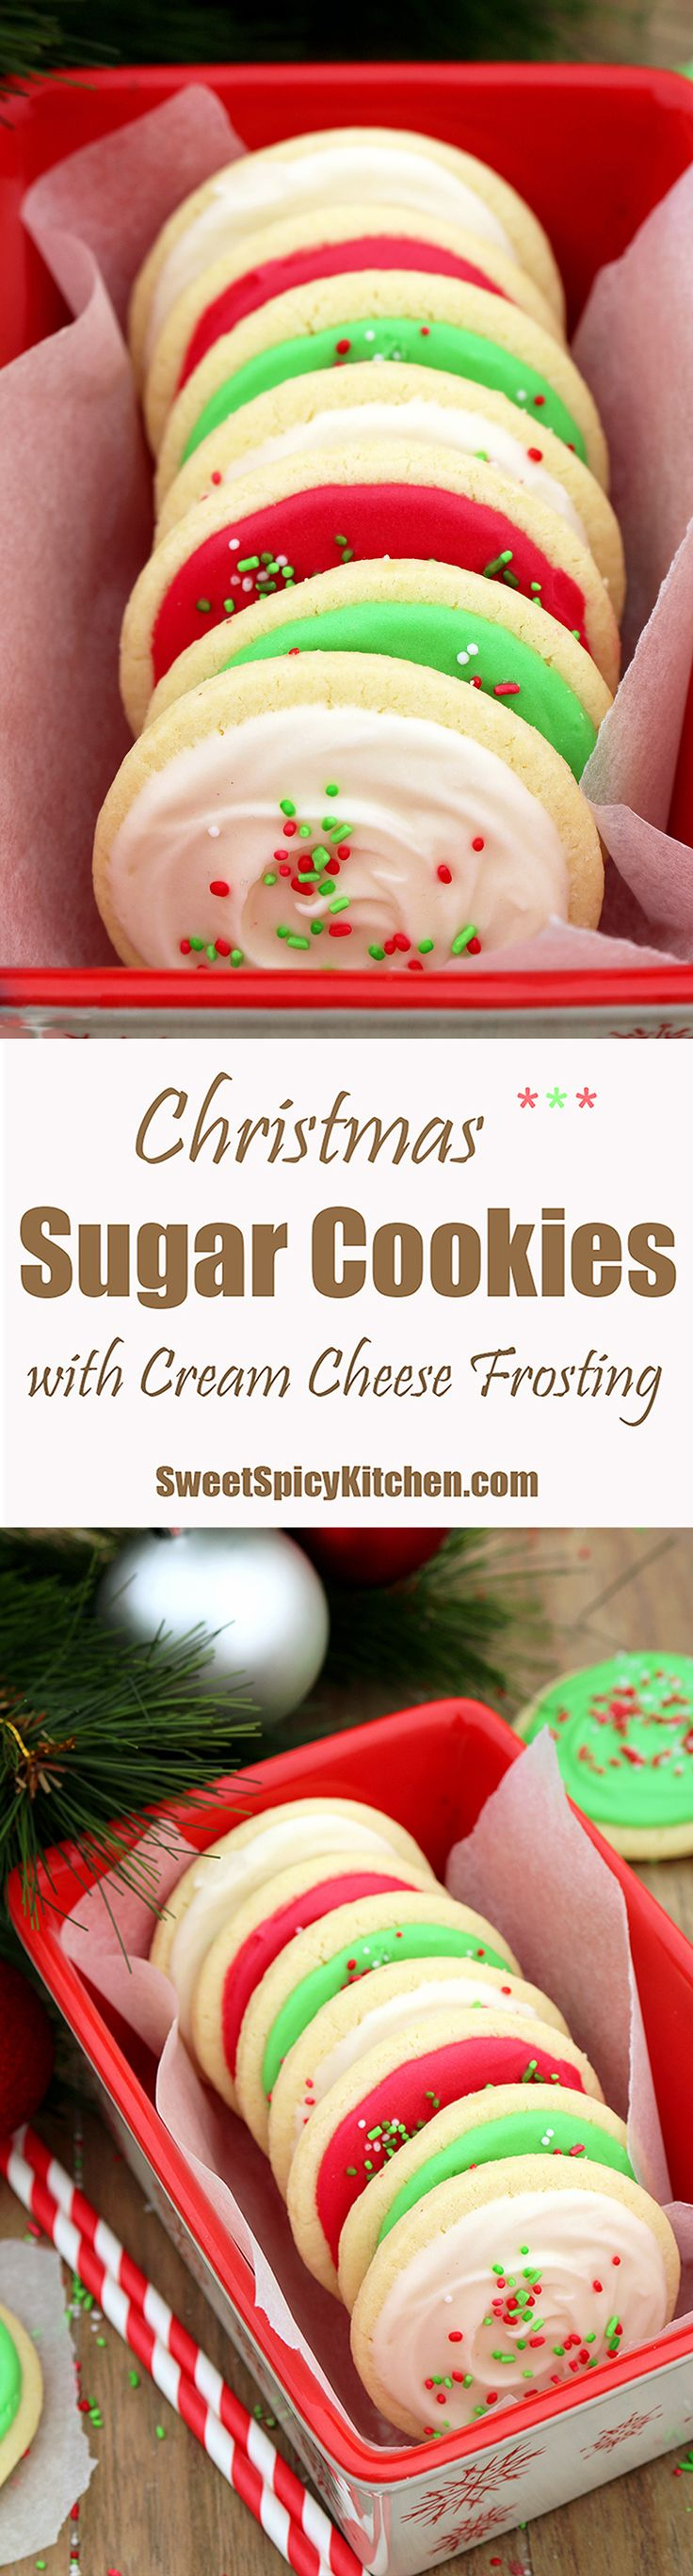 how to make glaze icing for sugar cookies